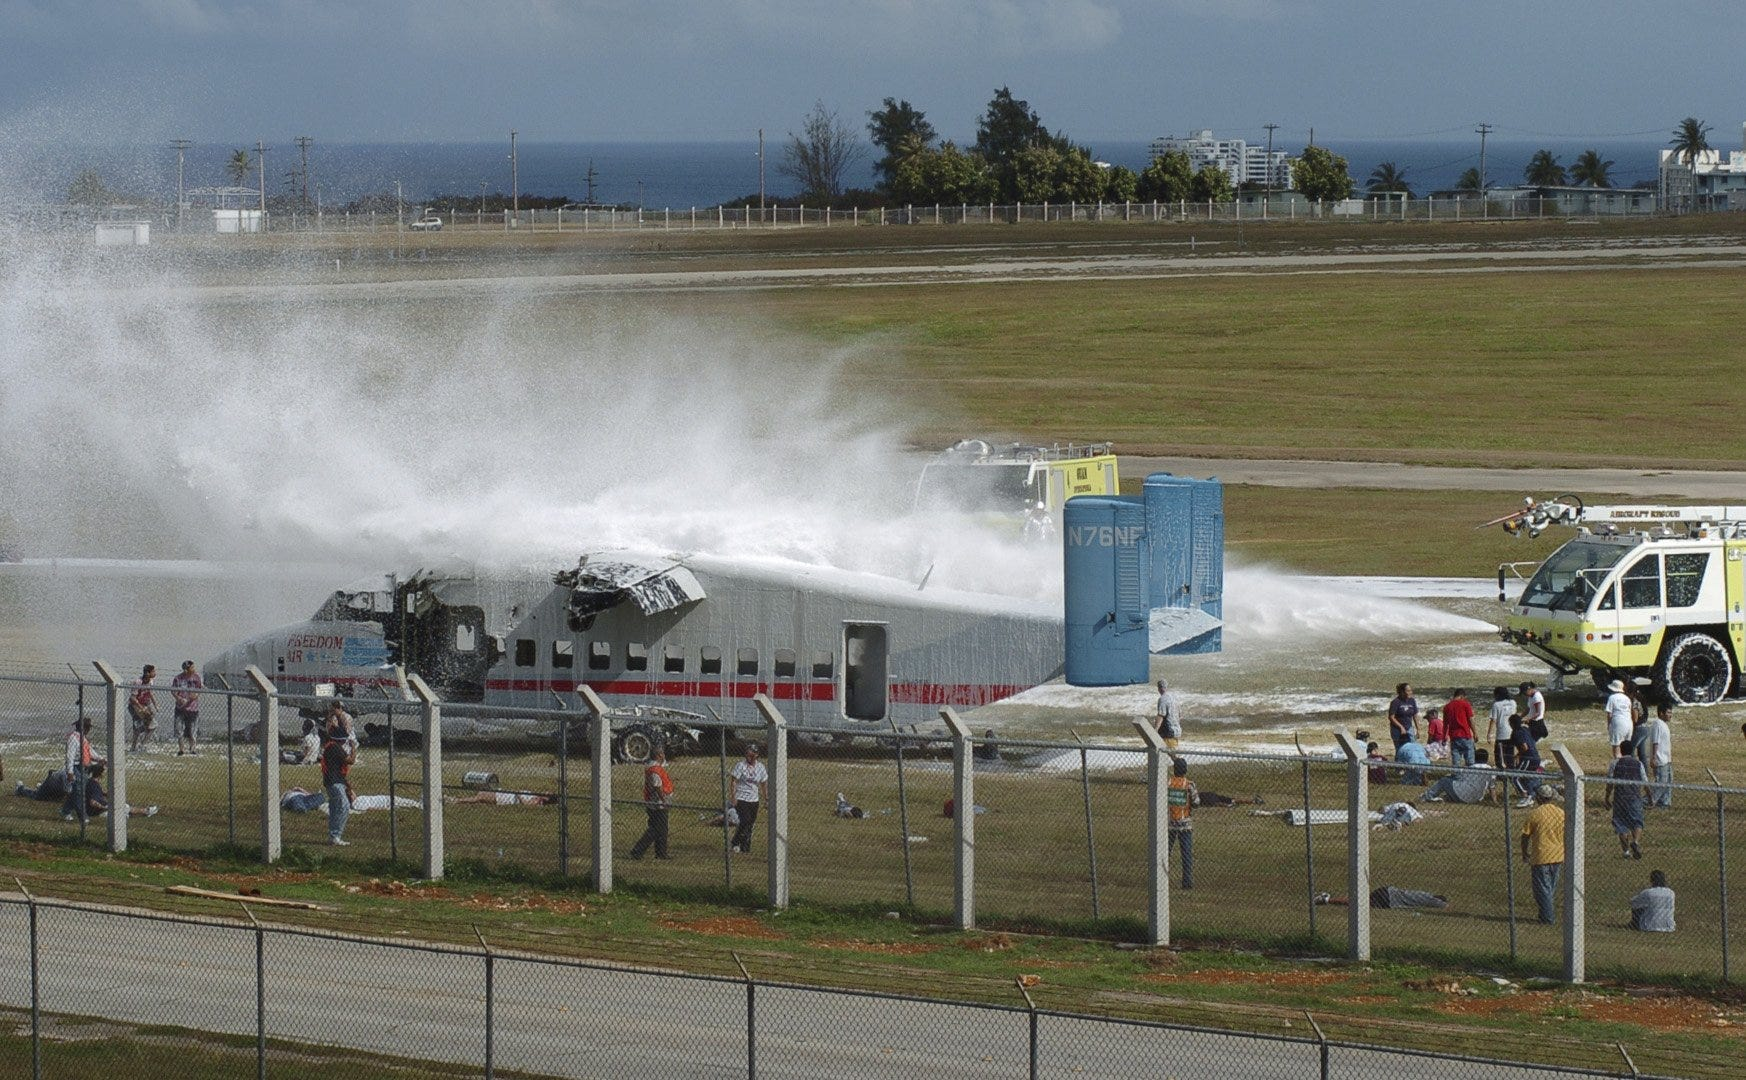 In this file photo, airport fire trucks spray an airplane during emergency response training at the A.B. Won Pat Guam International Airport. The airport got a grant for more than $15.9 million to construct a new aircraft rescue and firefighting building.